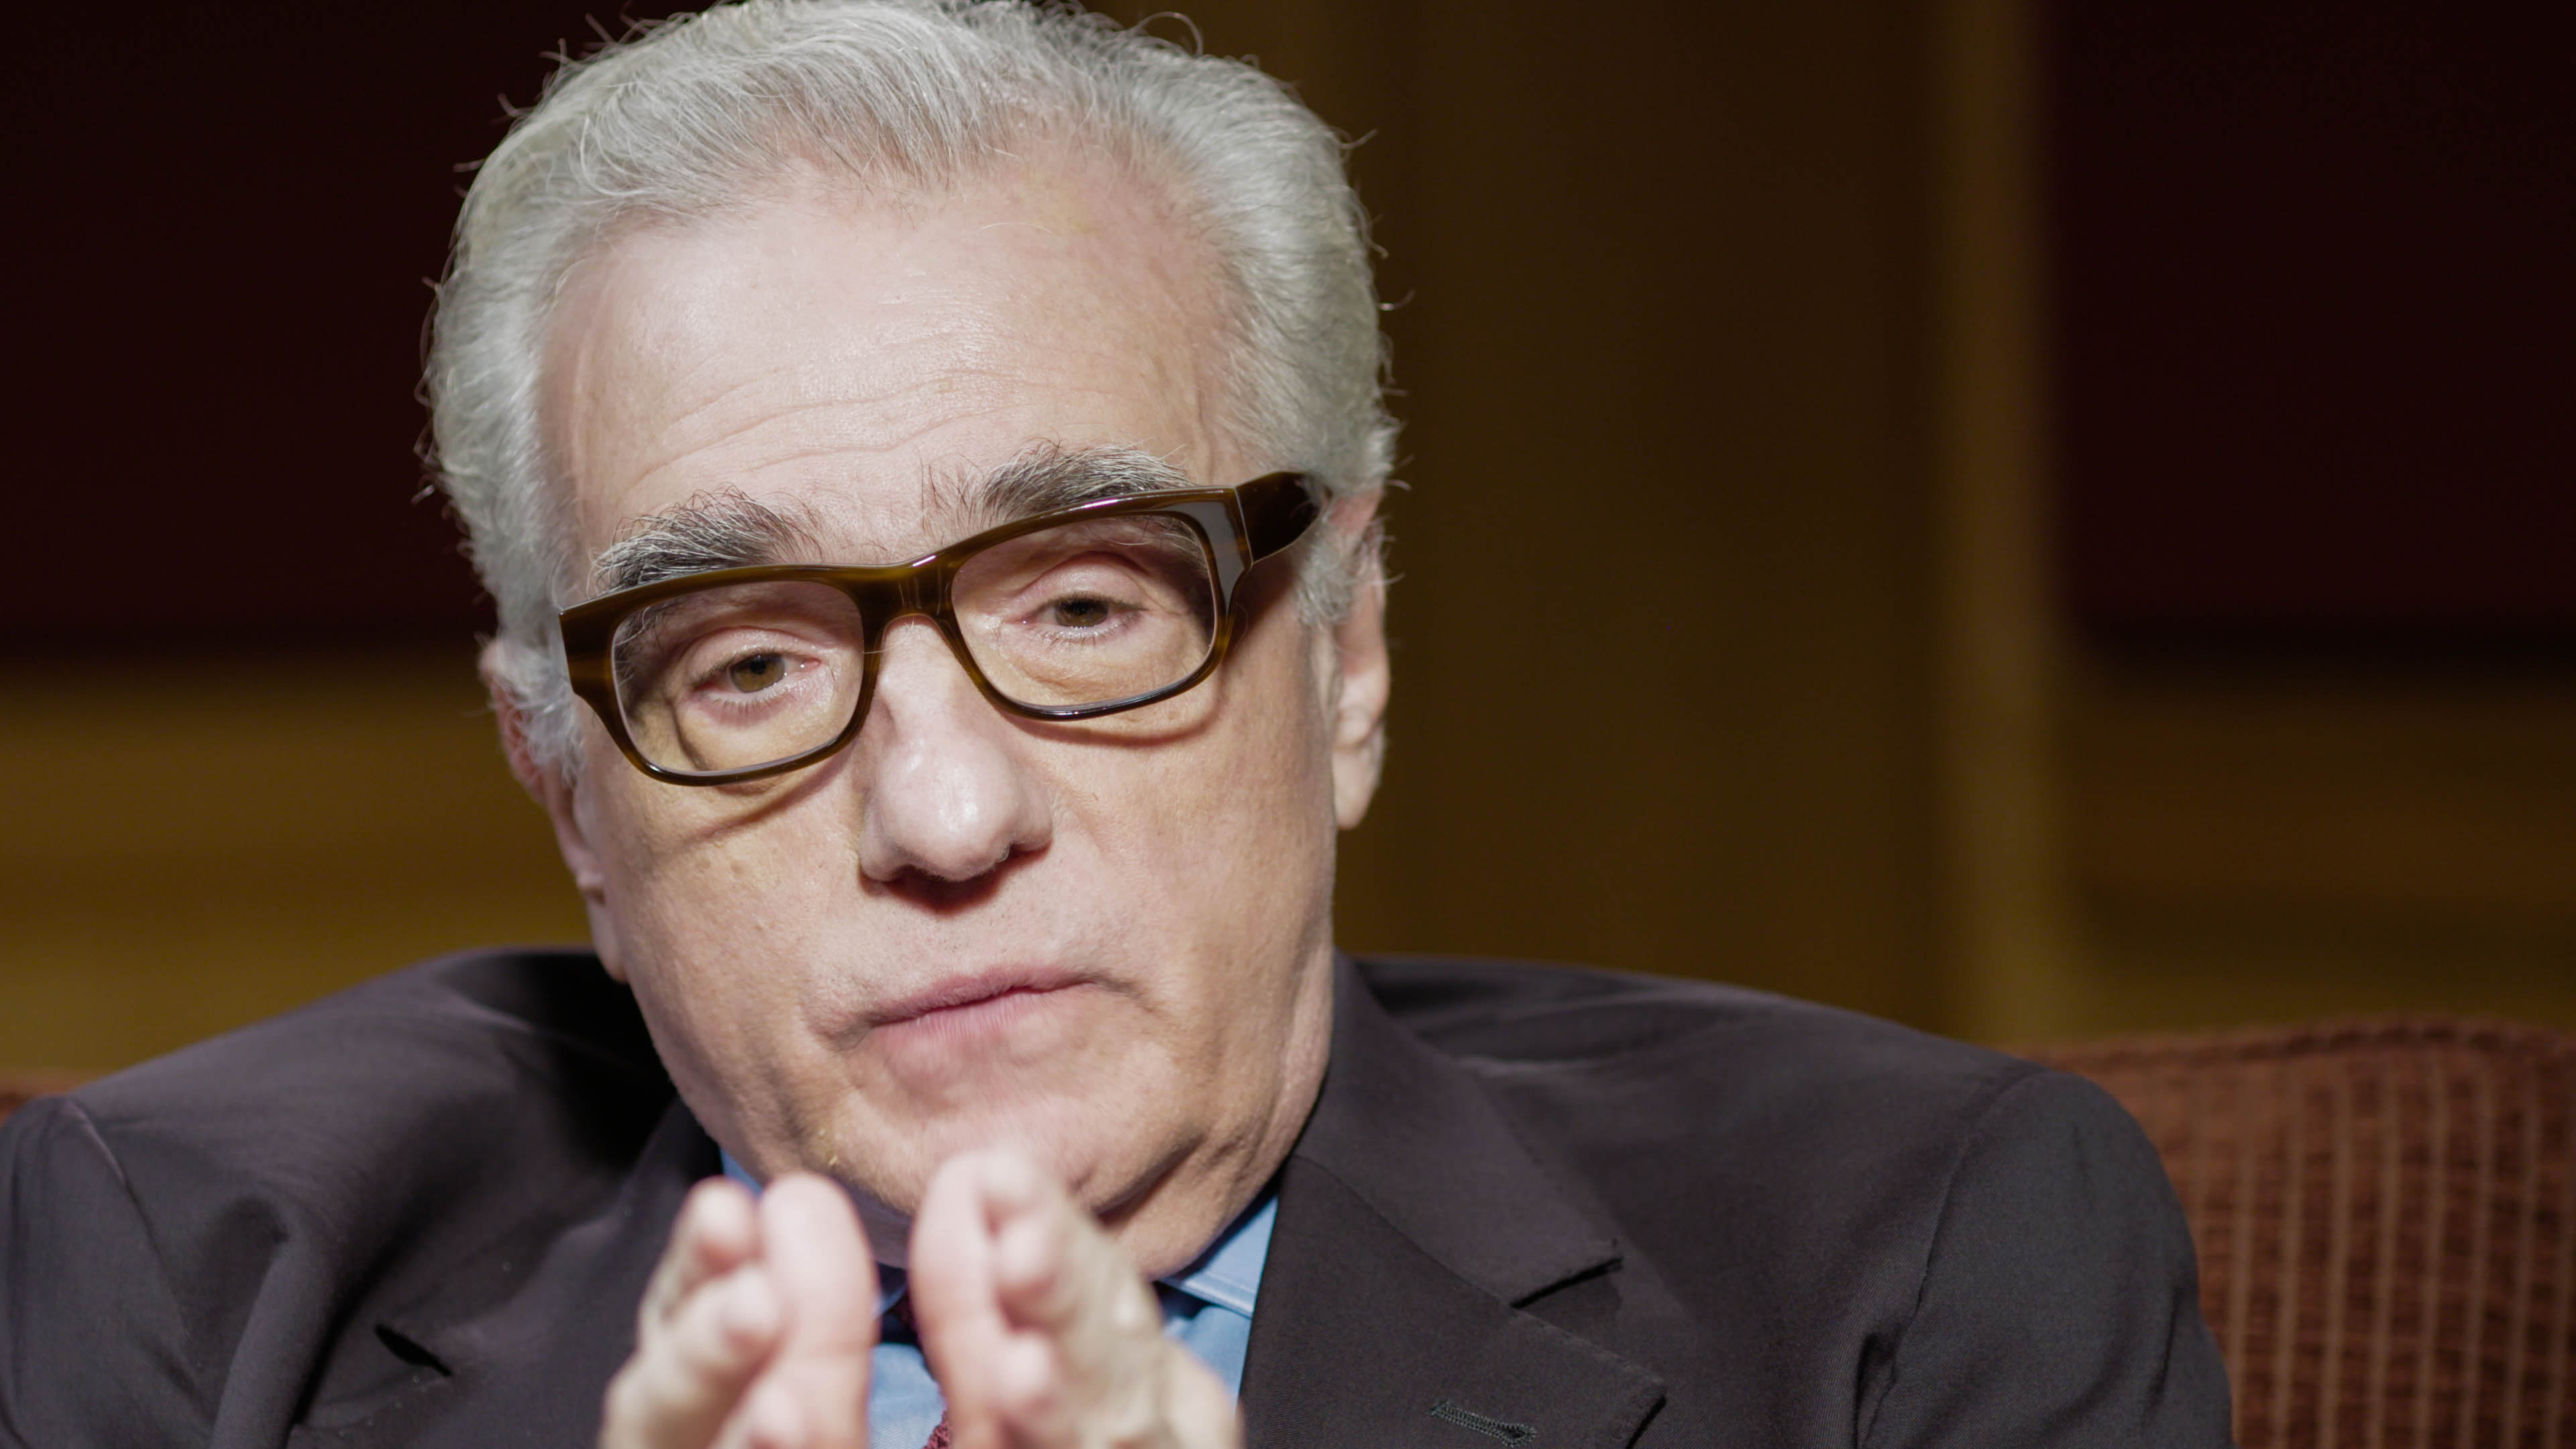 Full Transcript: Martin Scorsese Discusses Faith And His Film 'silence'